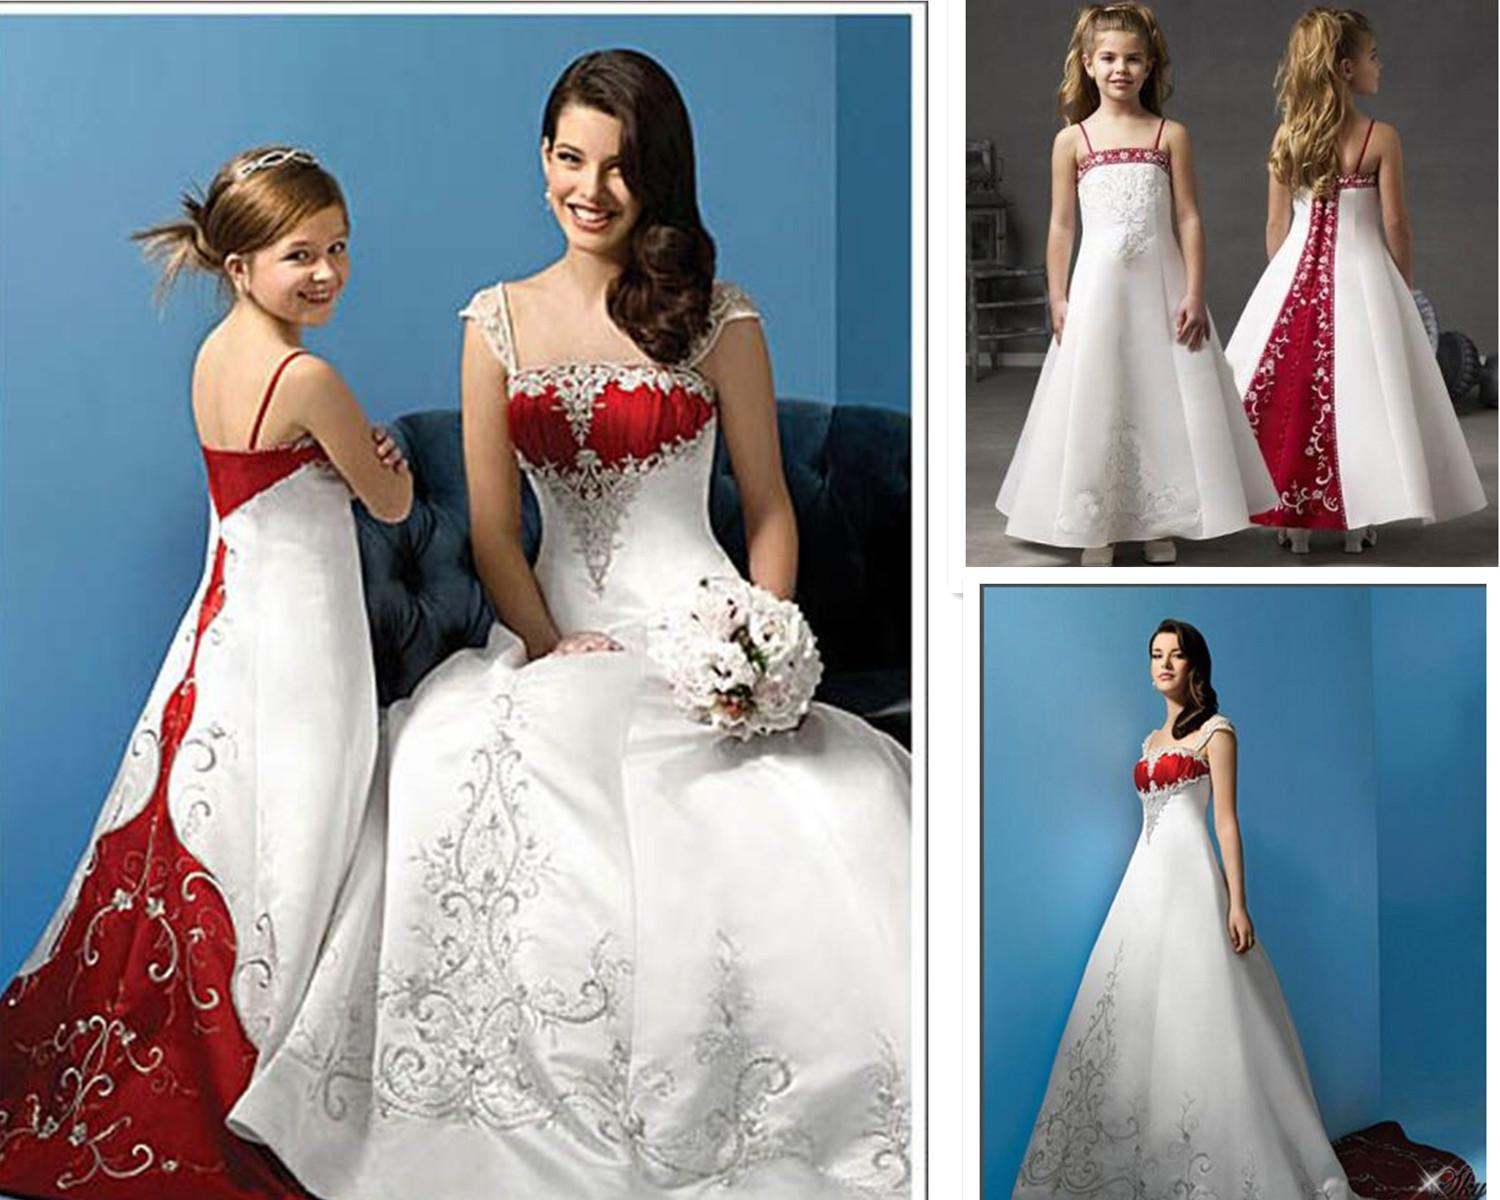 Discount Exquisite White And Red Wedding Dress Mother Daughter Matching  Dresses Plus Size Wedding Dress Cap Sleeves Embroidery Maternity Wedding  Gown ...